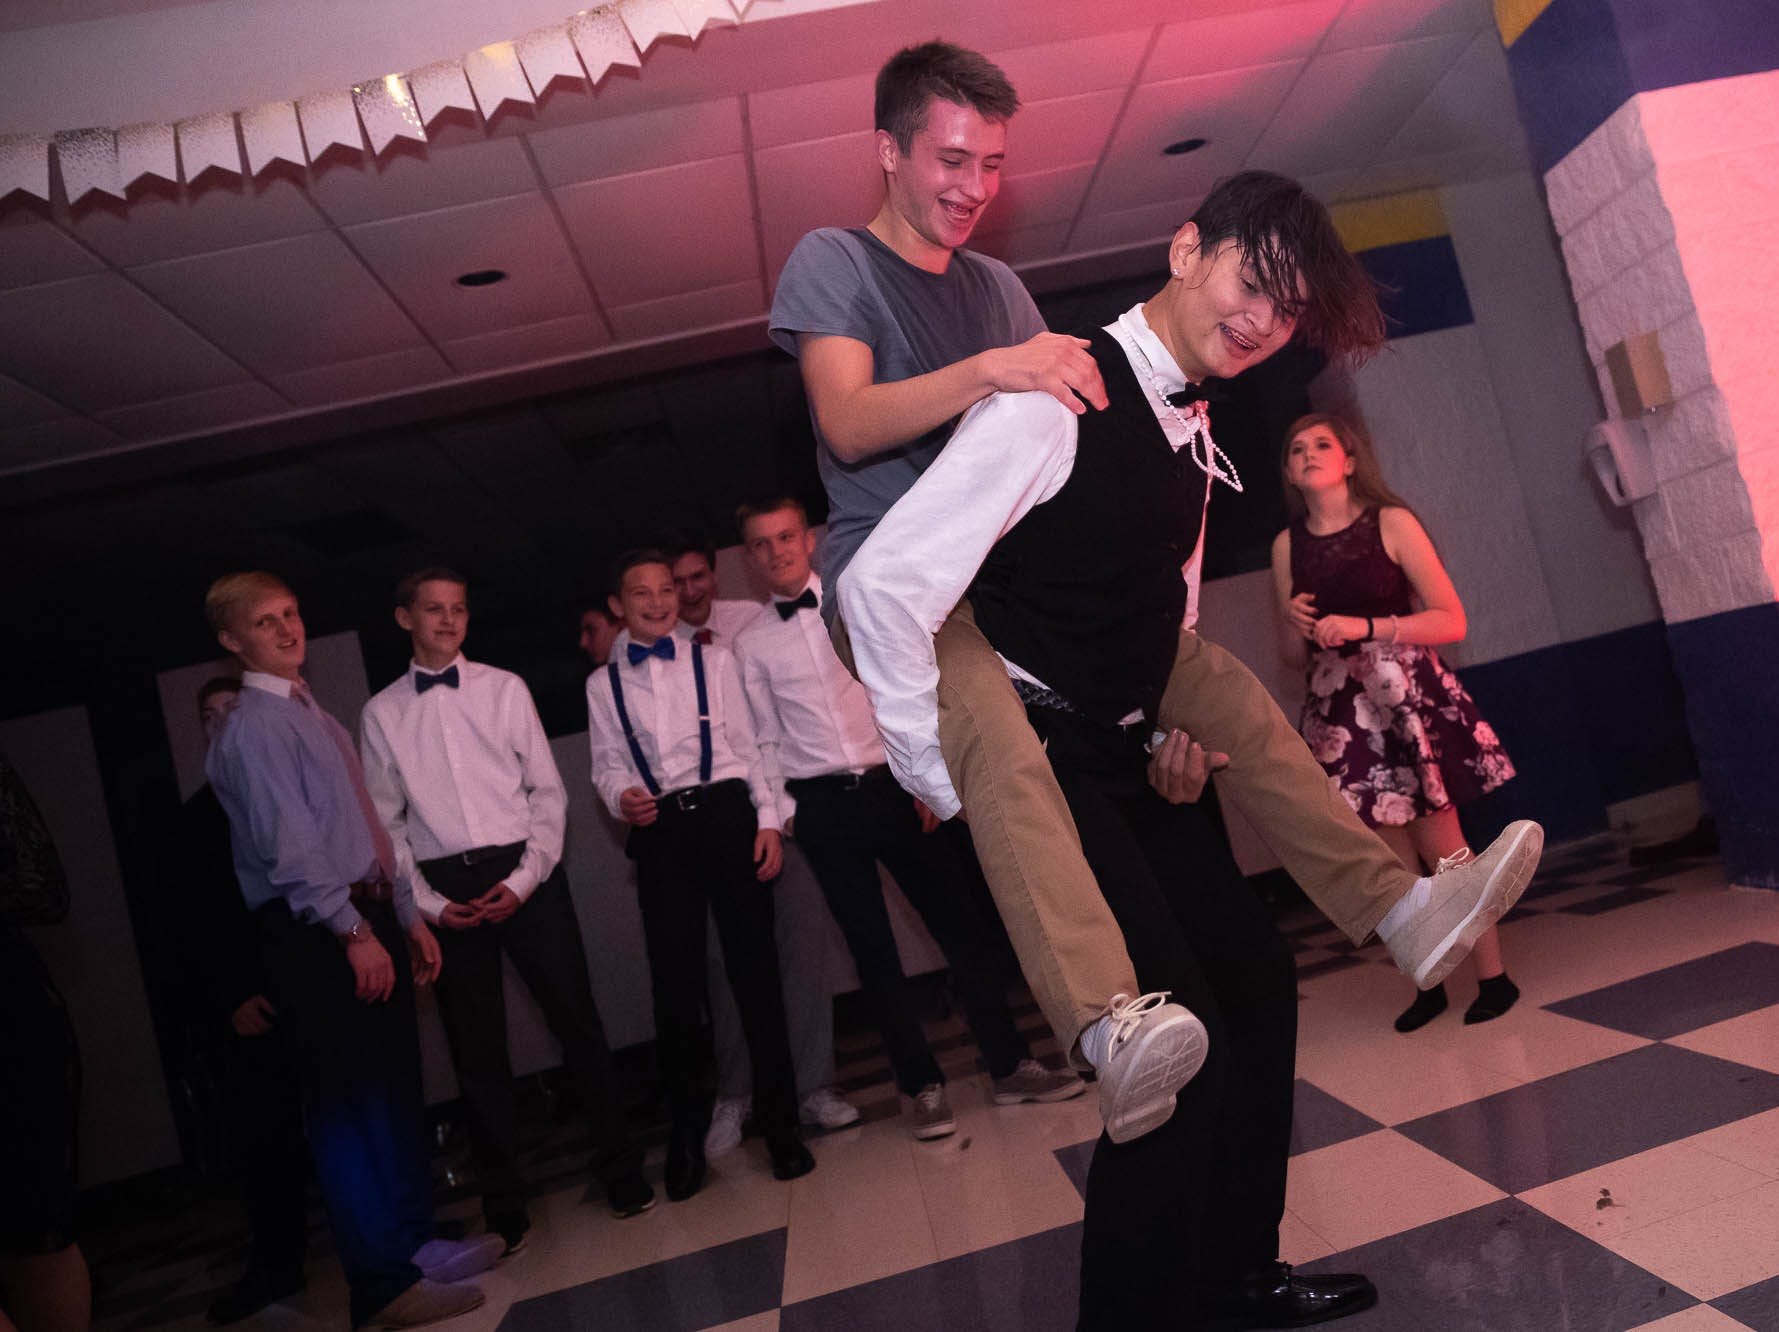 Littlestown High School students attend their homecoming dance, Saturday, Oct. 13, 2018, at Littlestown High School.